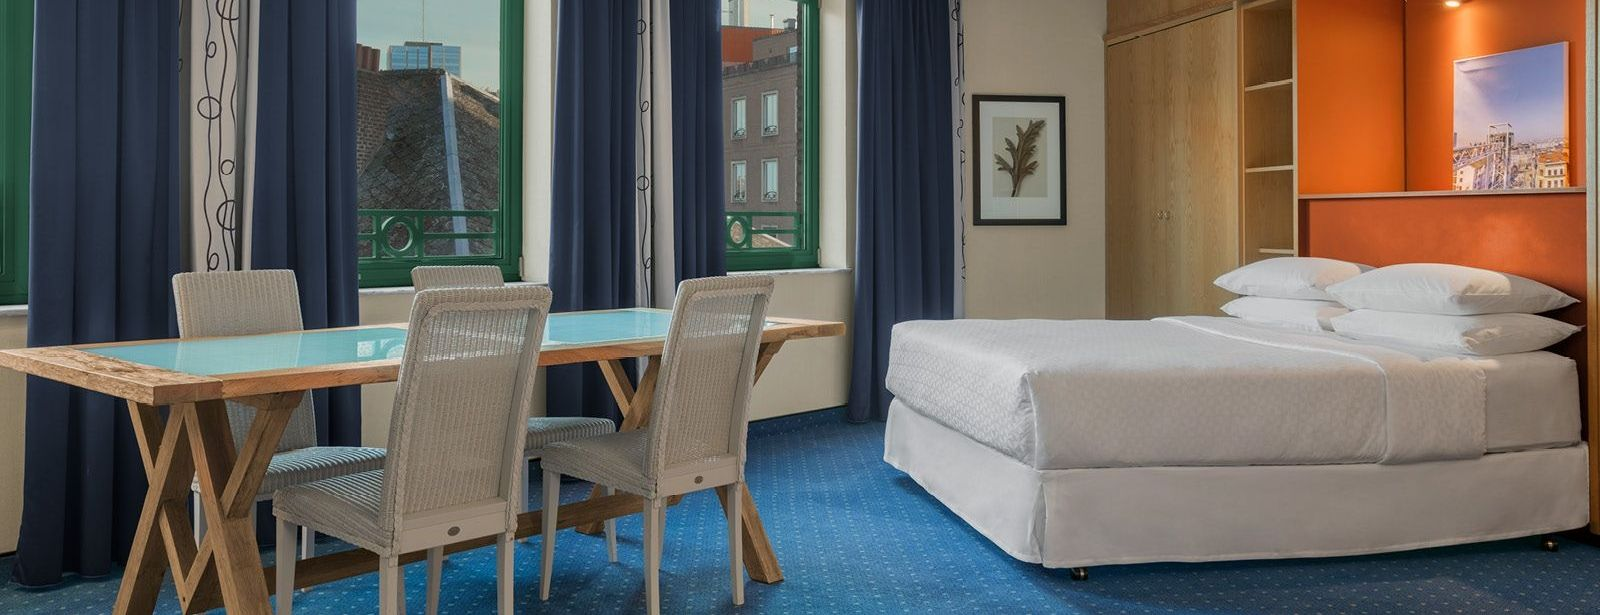 Deluxe Room Four Points by Sheraton Brussels